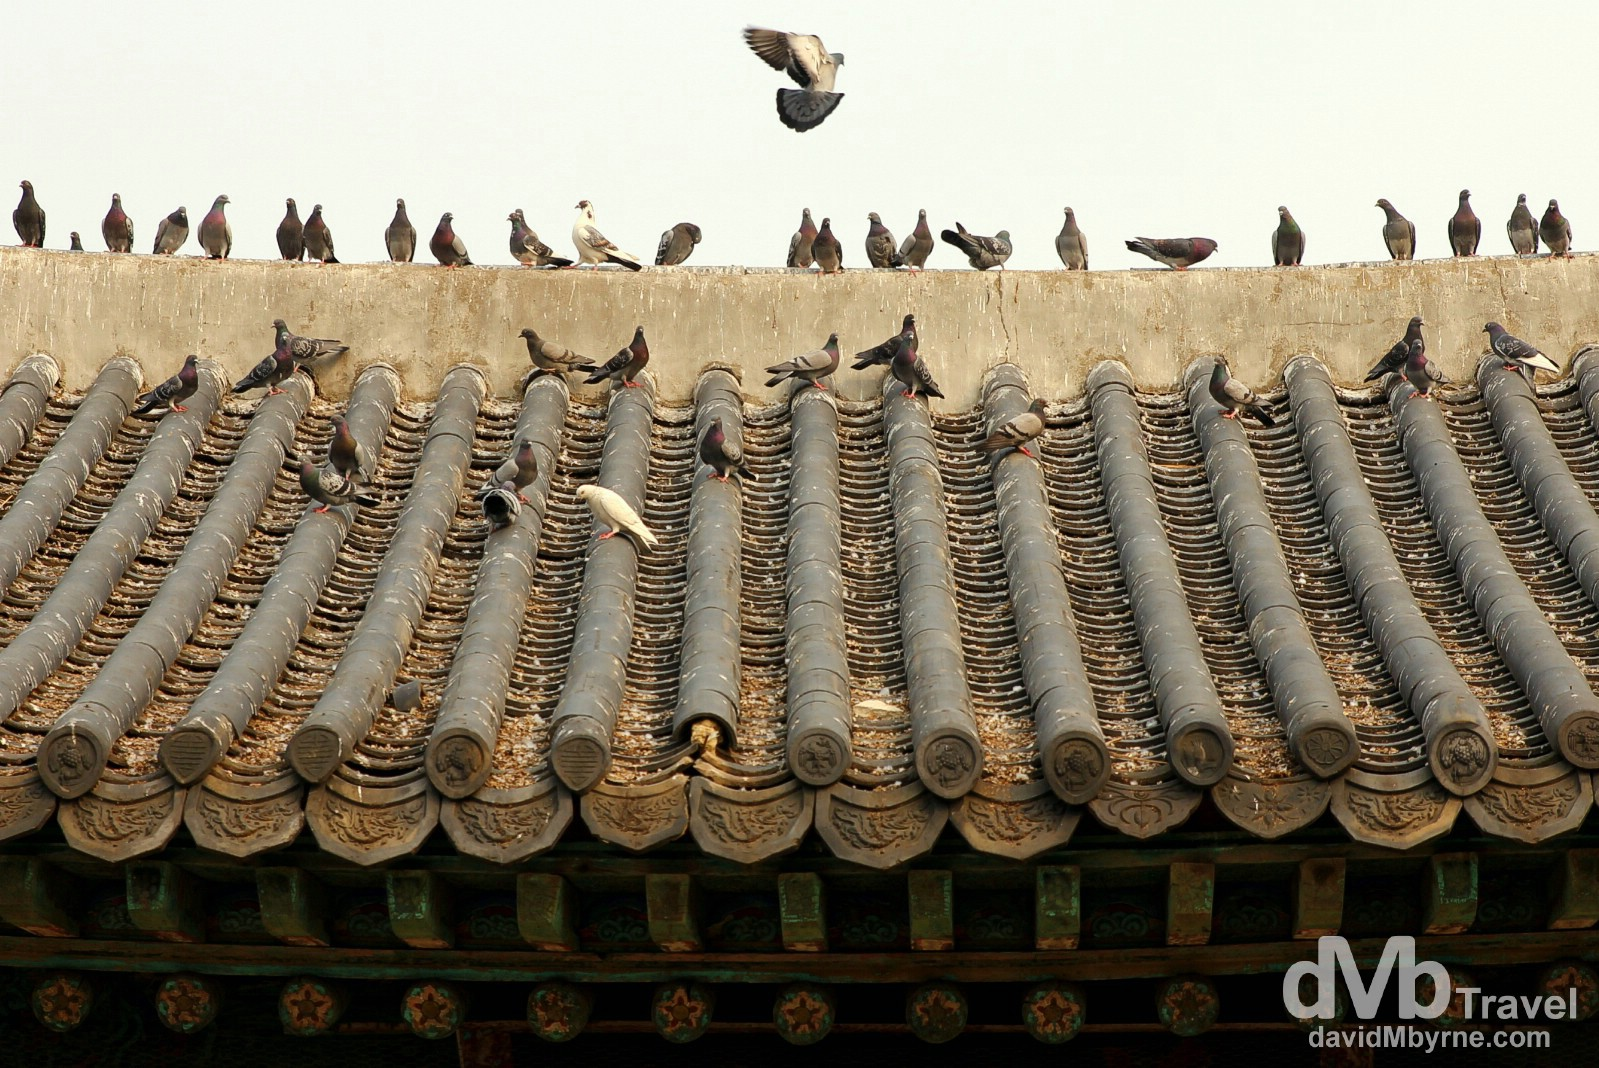 Pigeons on a roof of a section of the Suwon Hwaseong Fortress in Suwon, South Korea. February 23rd, 2014.